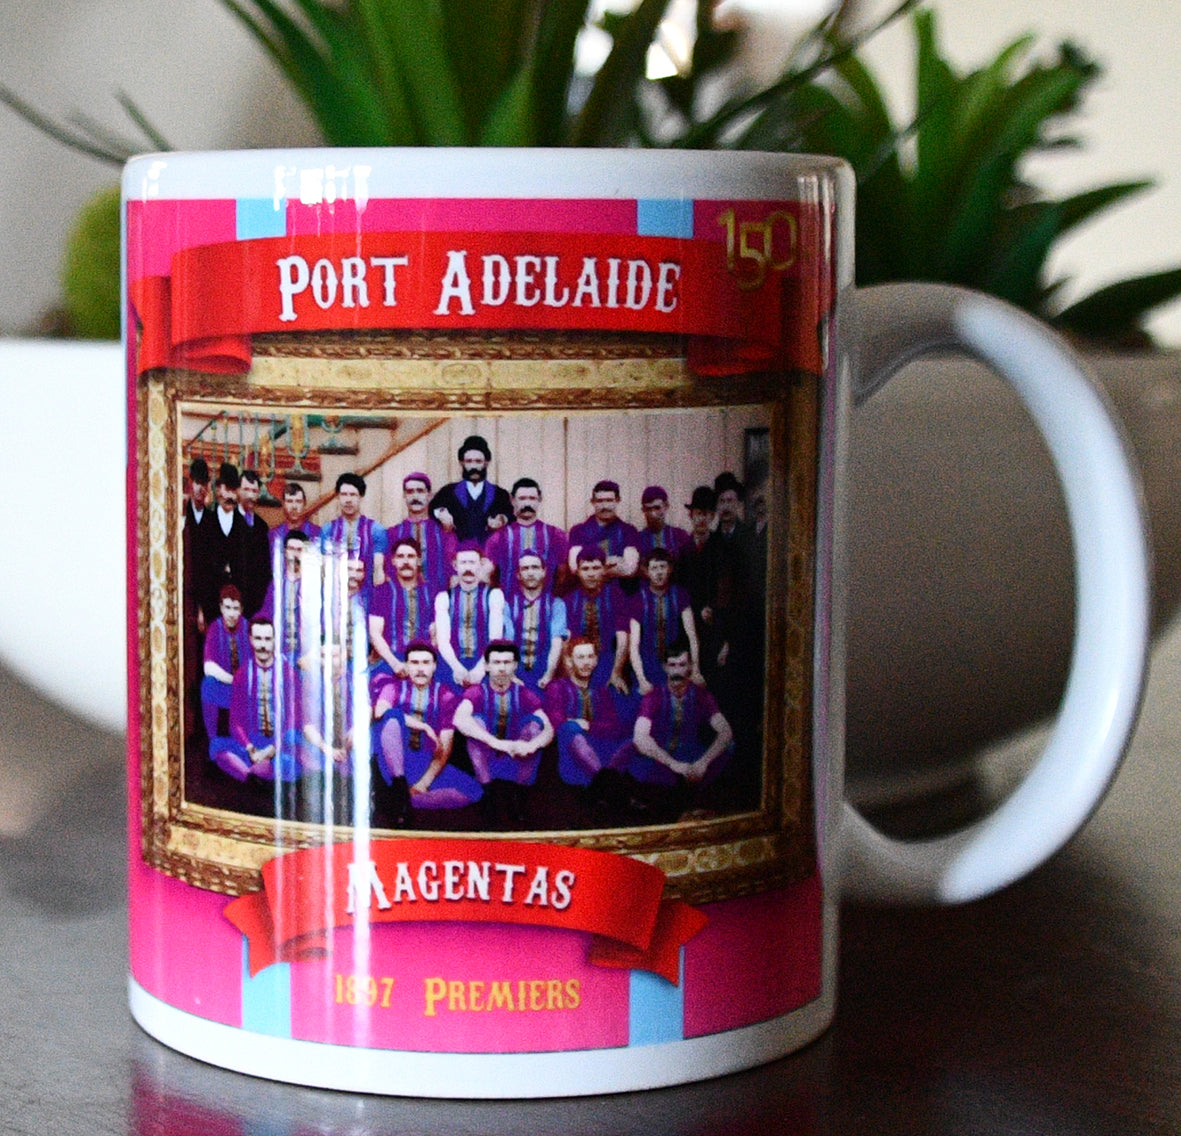 Port Adelaide Football Club 1897 Premiers- Collectors Mug- Footy Photo Mugs